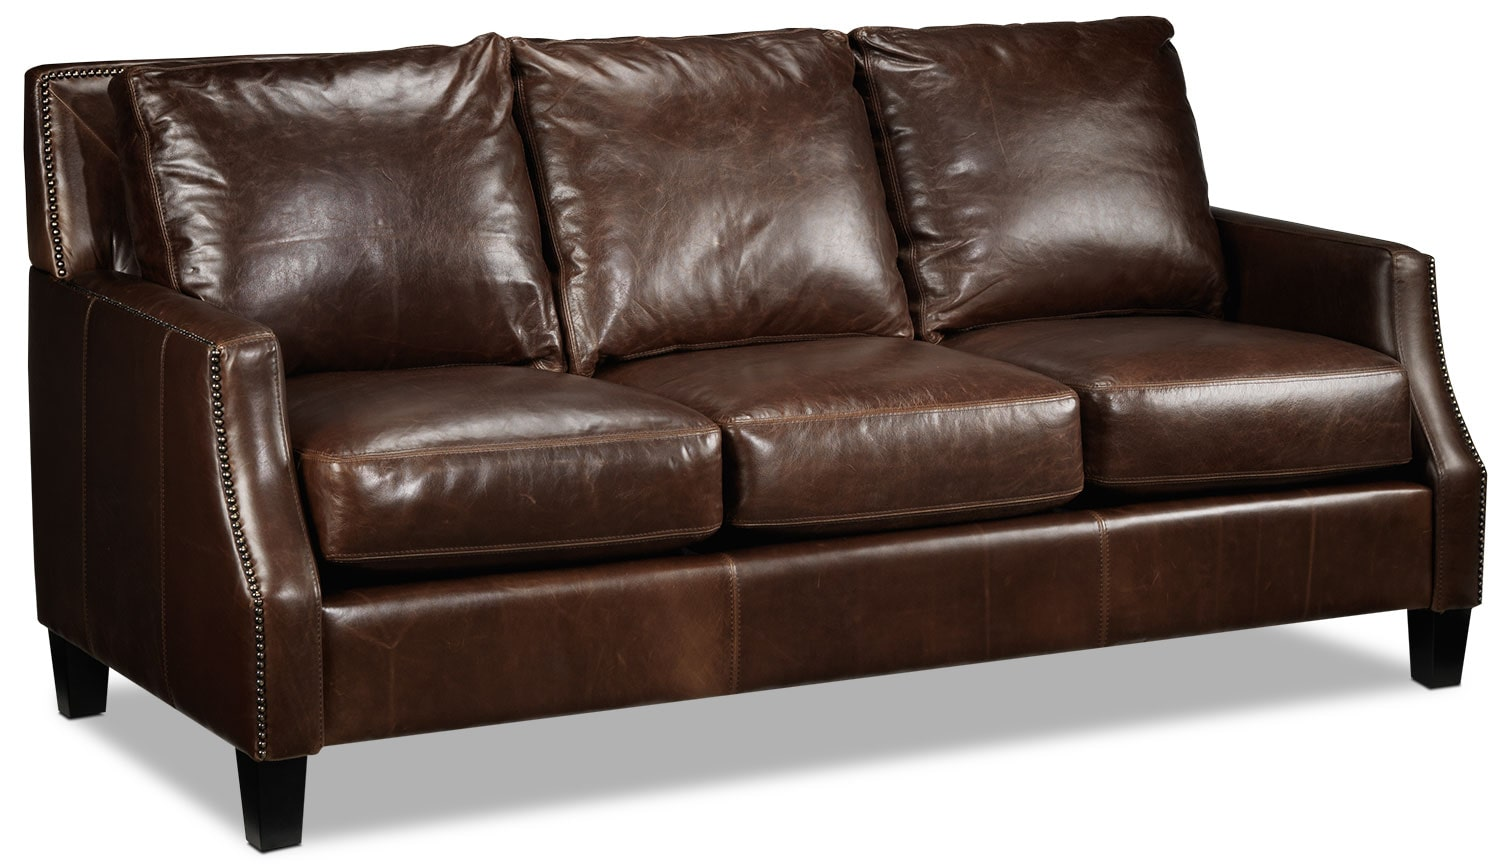 Living Room Furniture - Dallas Sofa - Brown